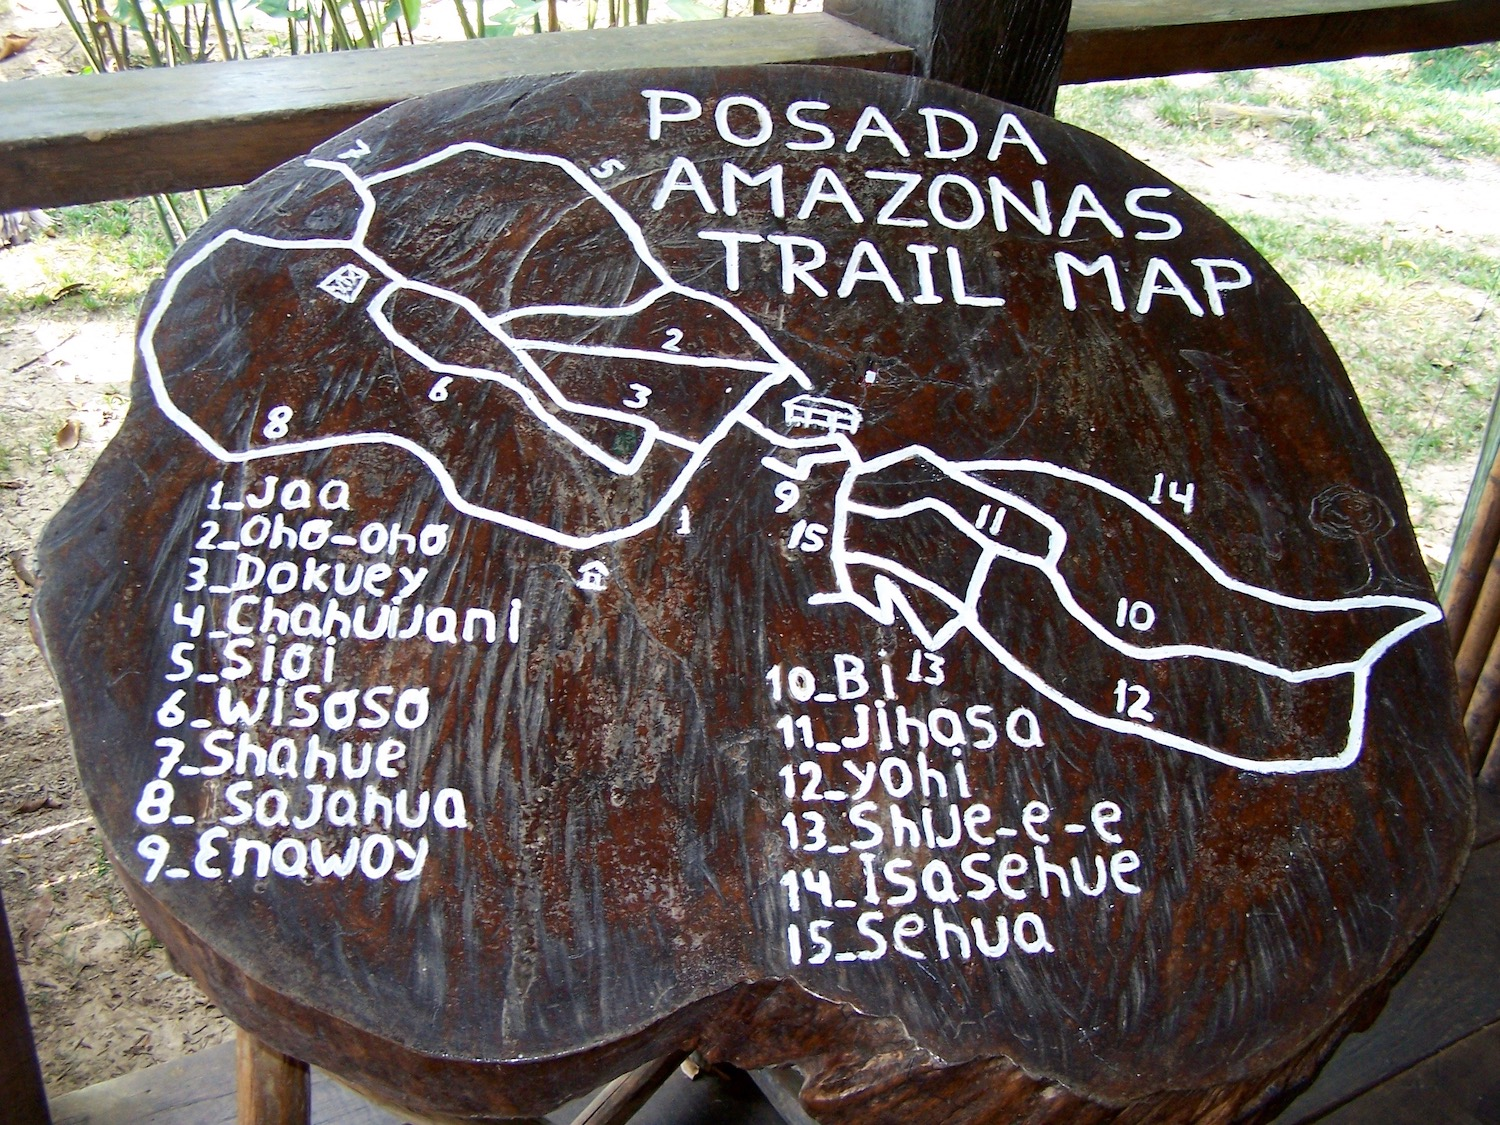 Sustainable tourism might mean hiking trails marked on boulders in the jungle.